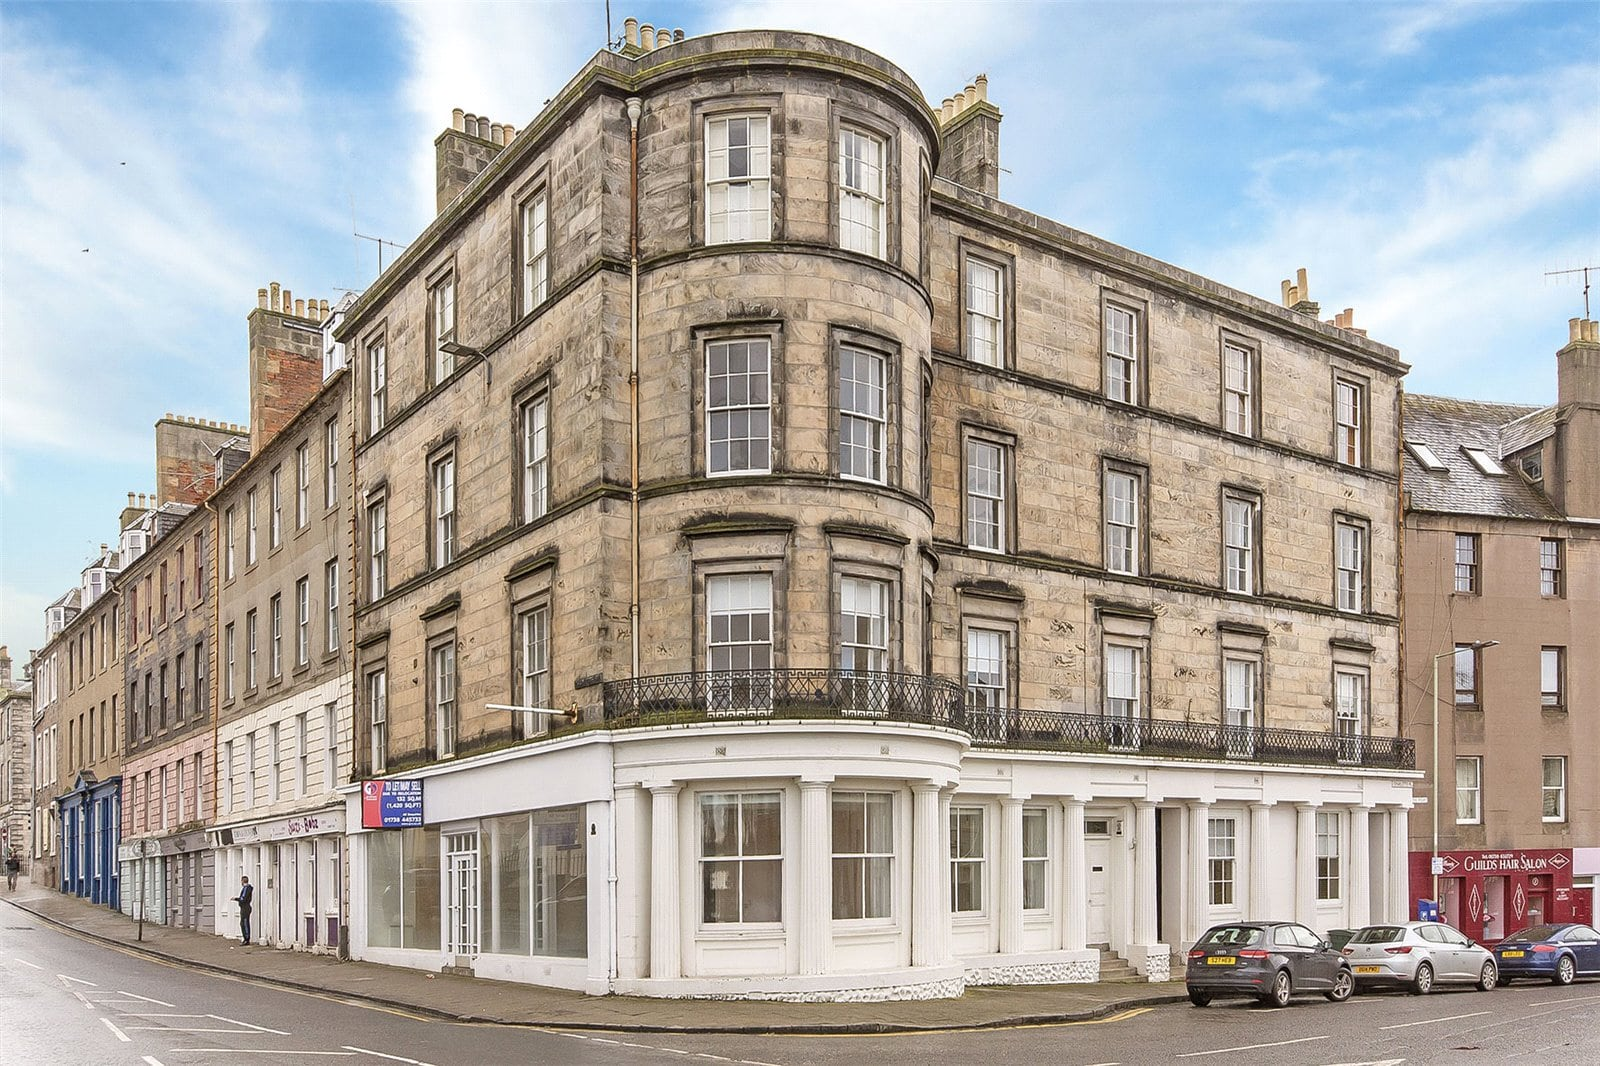 Perth Property of the Week: Flat 1, 2 Charlotte Place